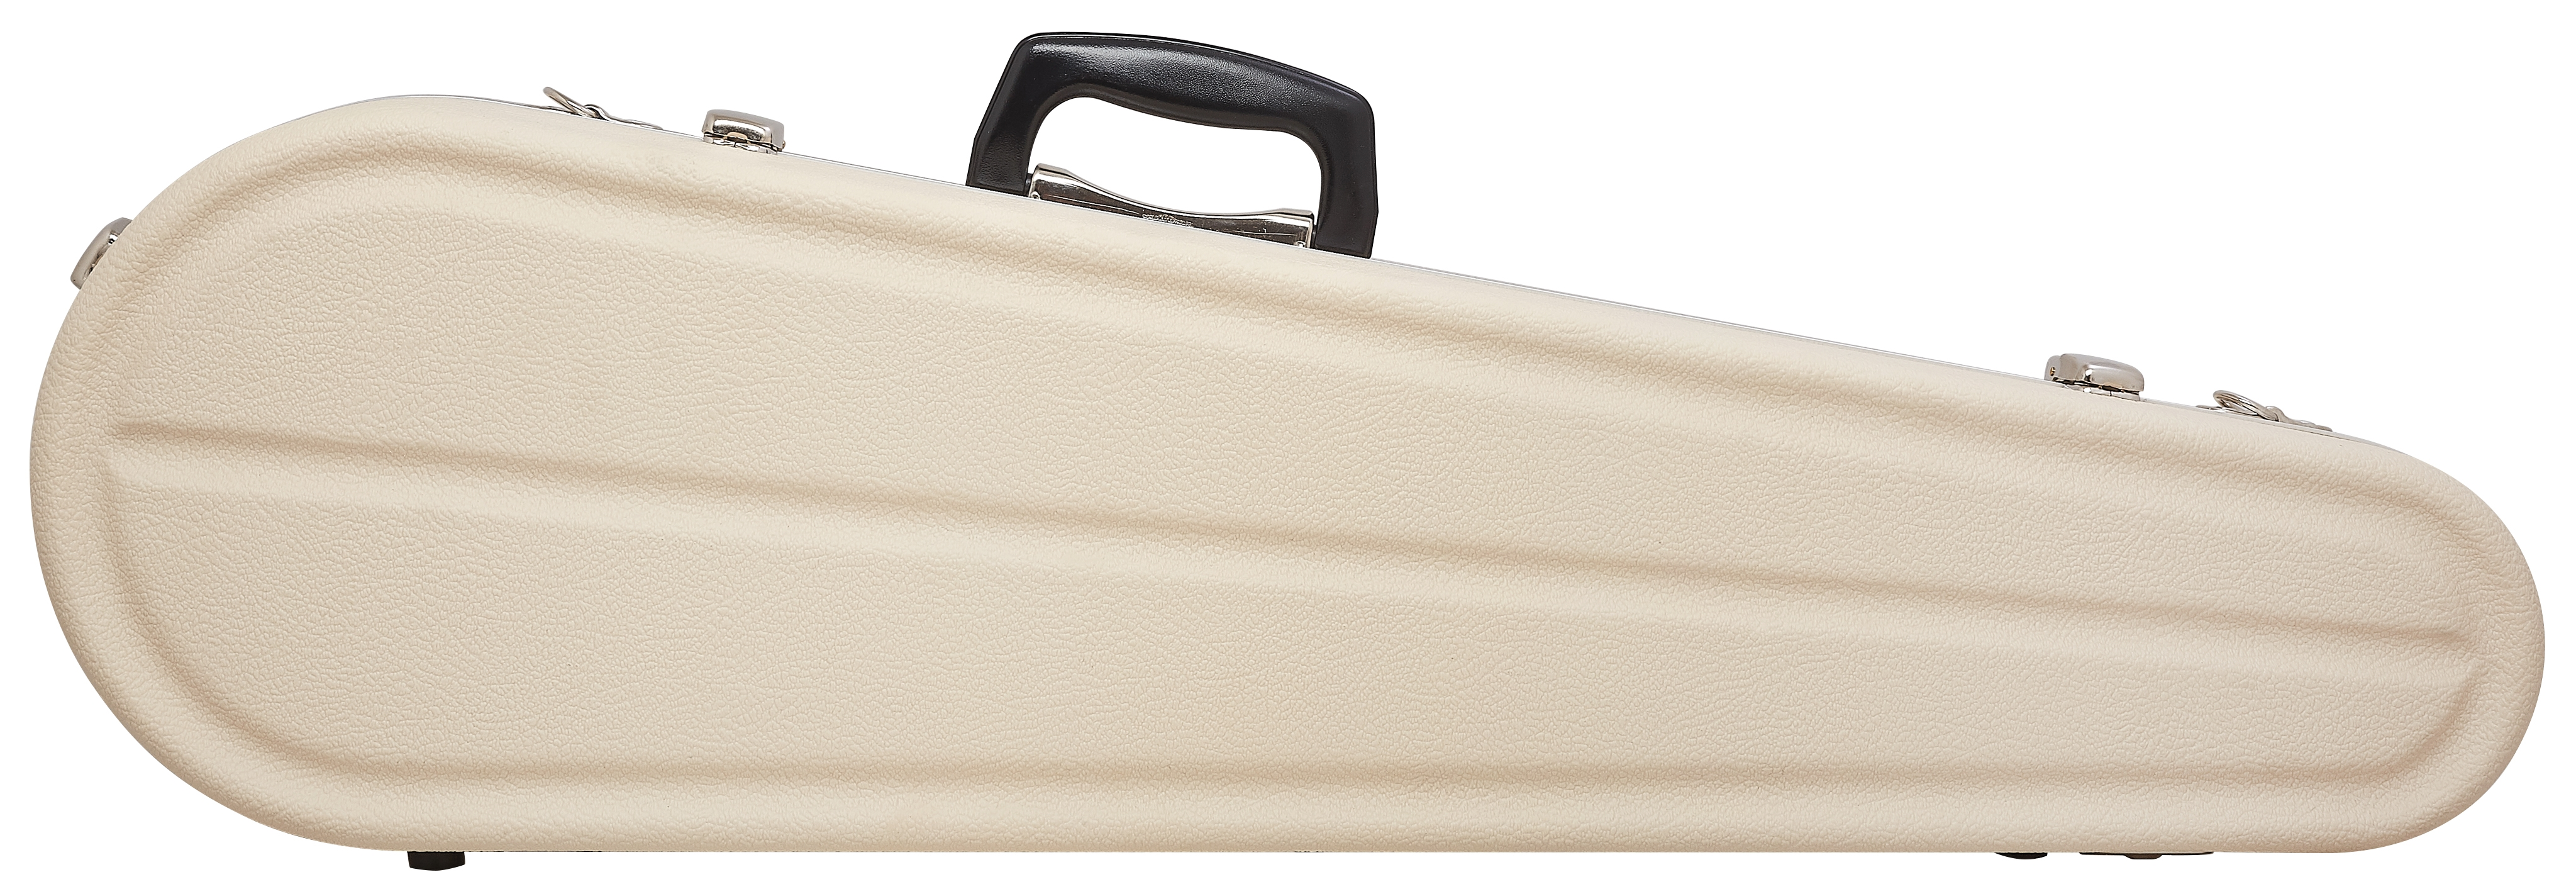 HISCOX Shaped Violin Case - Ivory/Silver